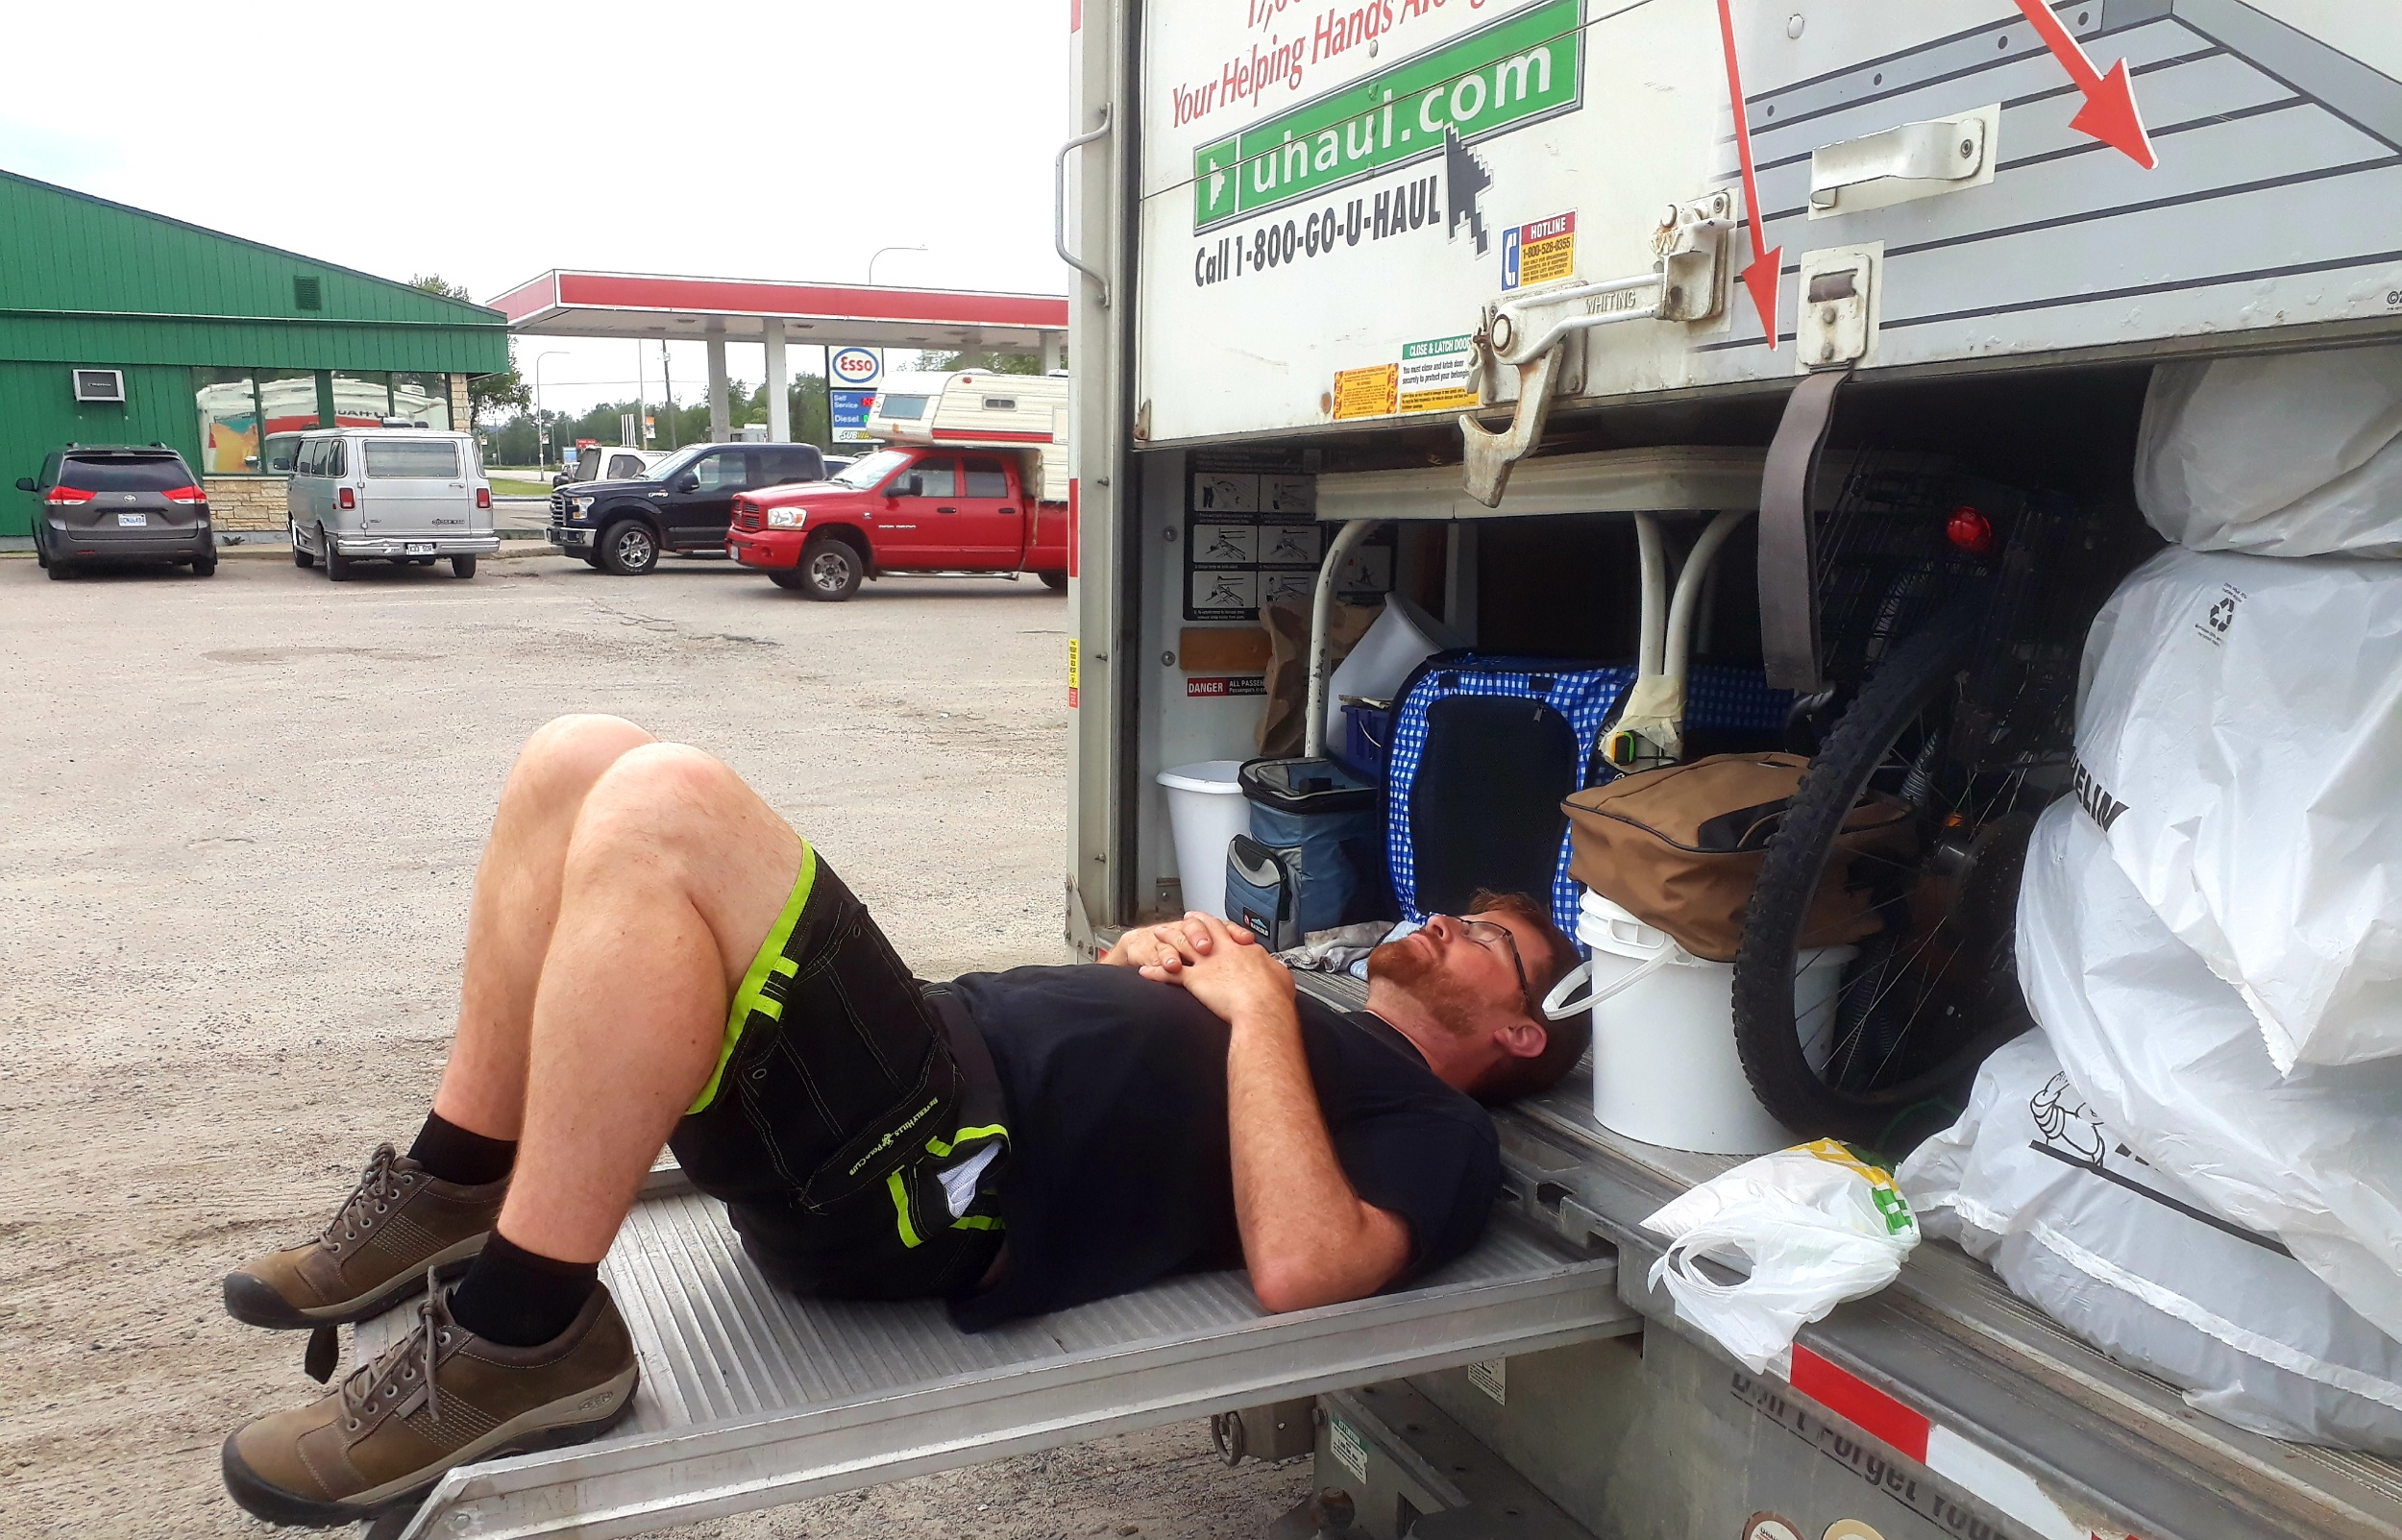 And at some point along the way I took a very brief nap on the U-Haul ramp. It was surprisingly comfortable! I'd do it again.